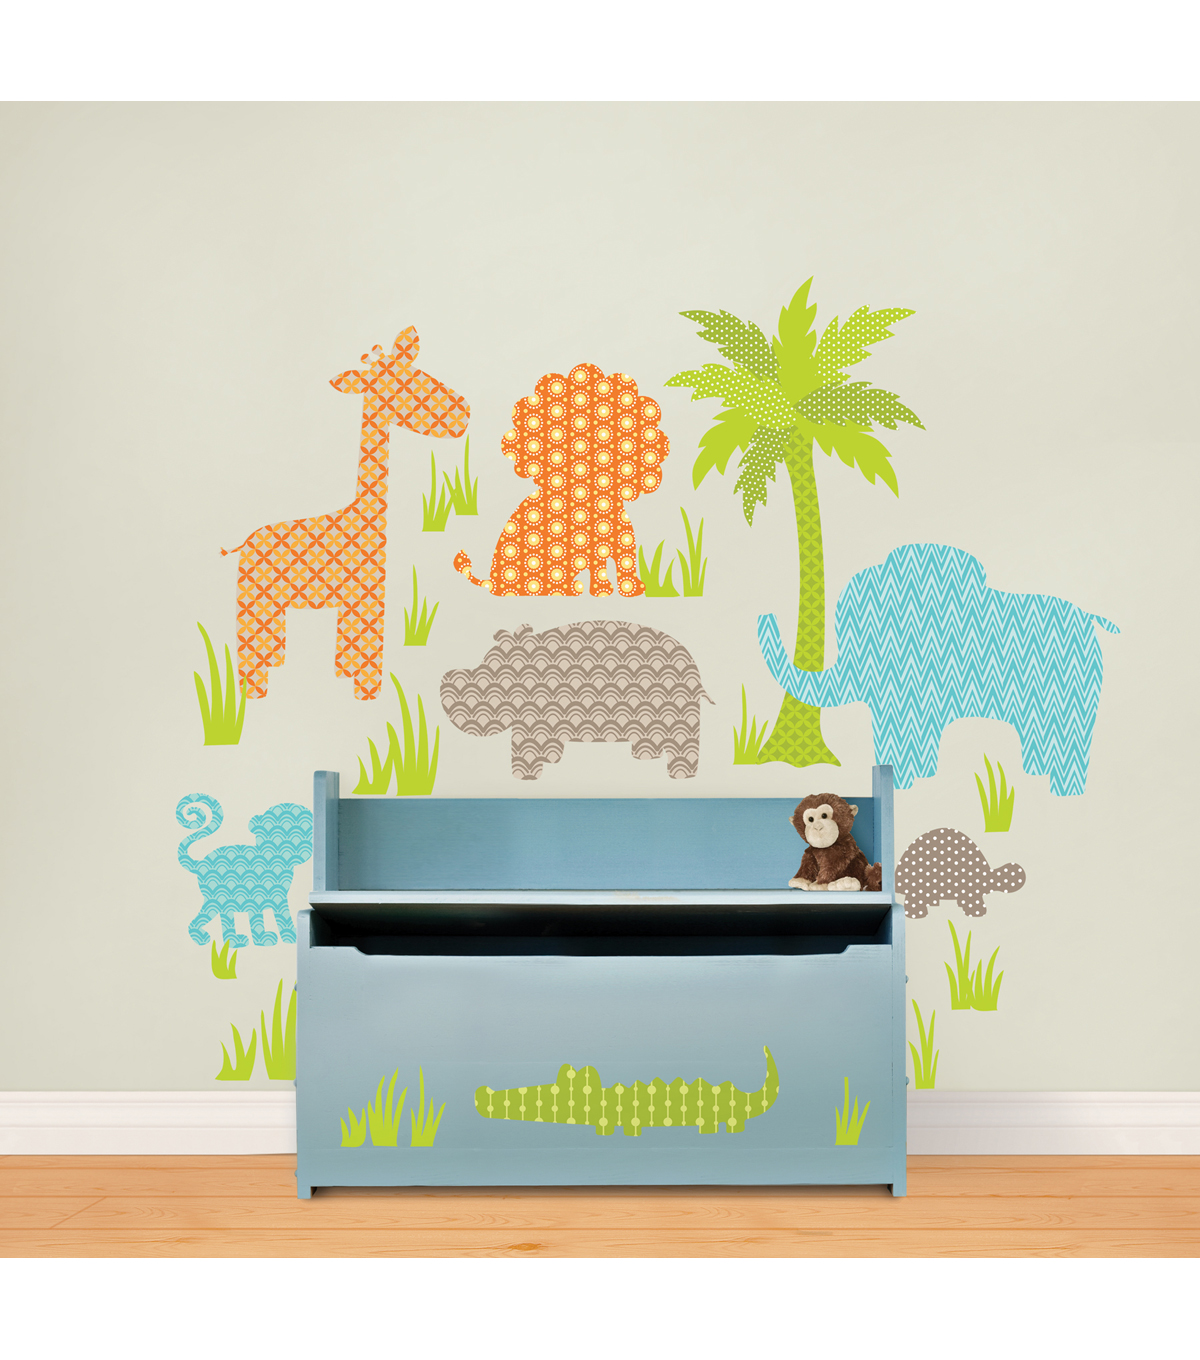 Wall Pops Jungle Friends Wall Art Decal Kit, 41 Piece Set